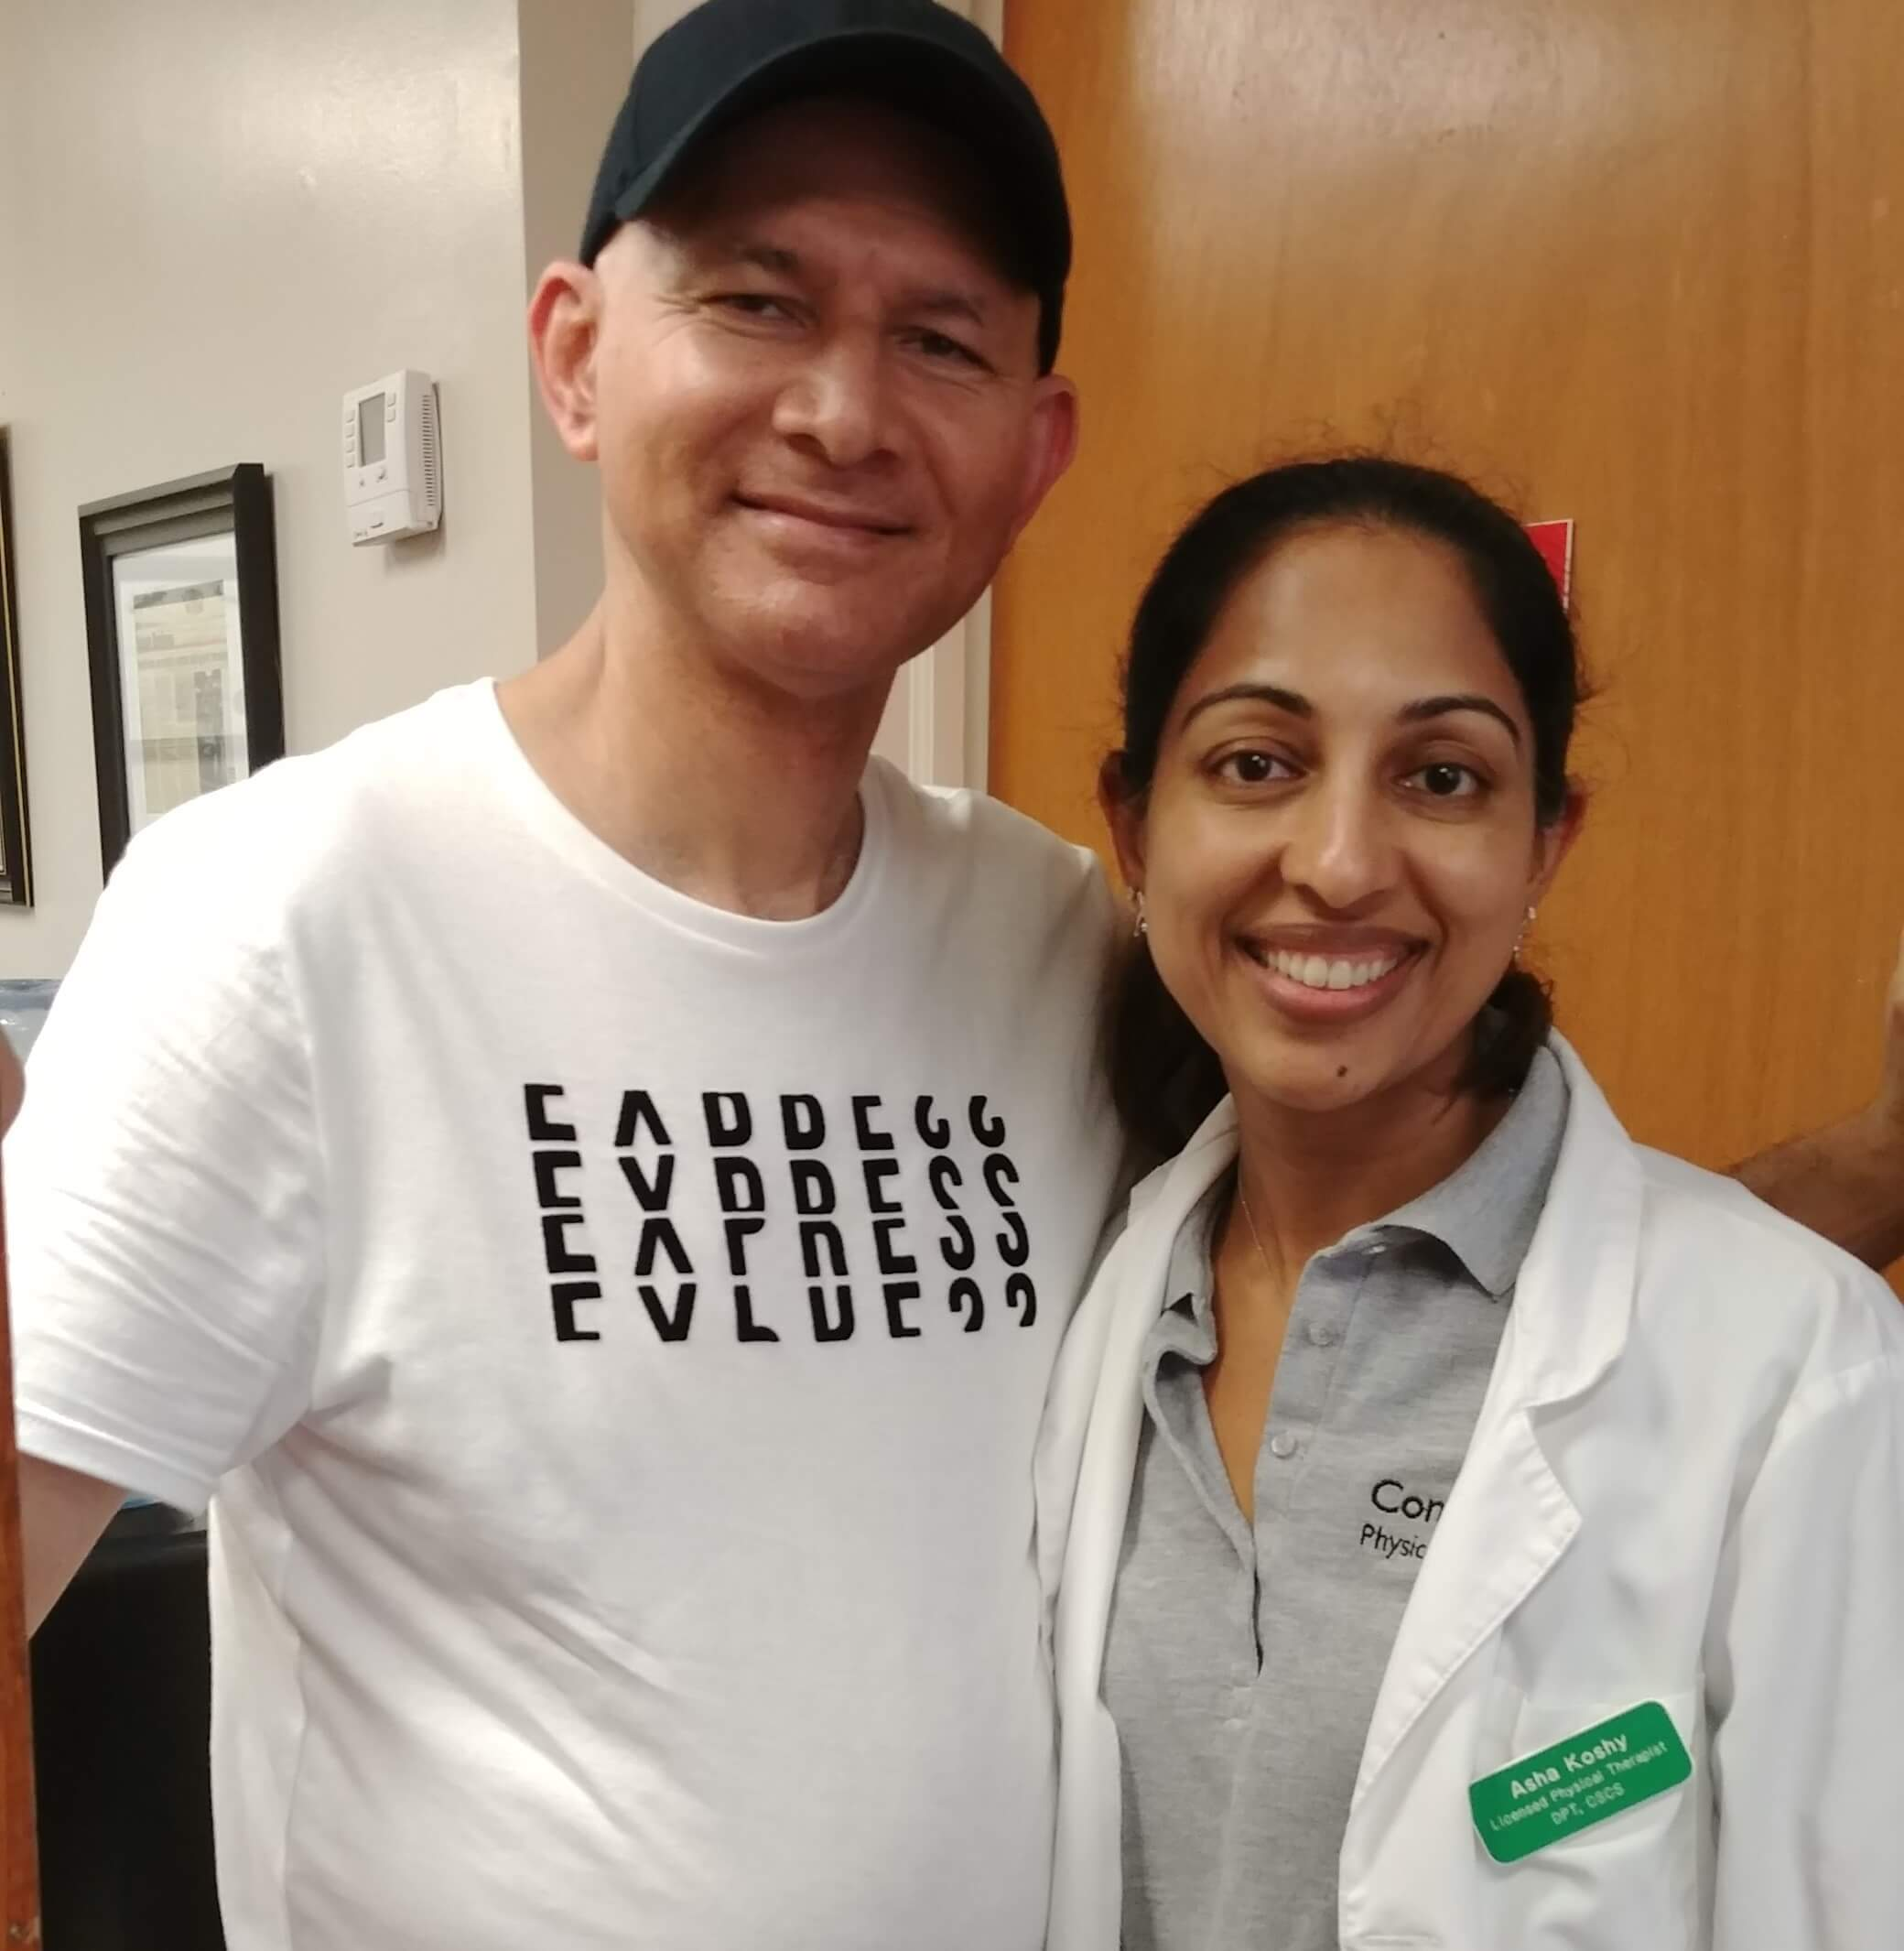 elizabeth physical therapy specialist dr. asha pumarada and knee pain patient Rubin